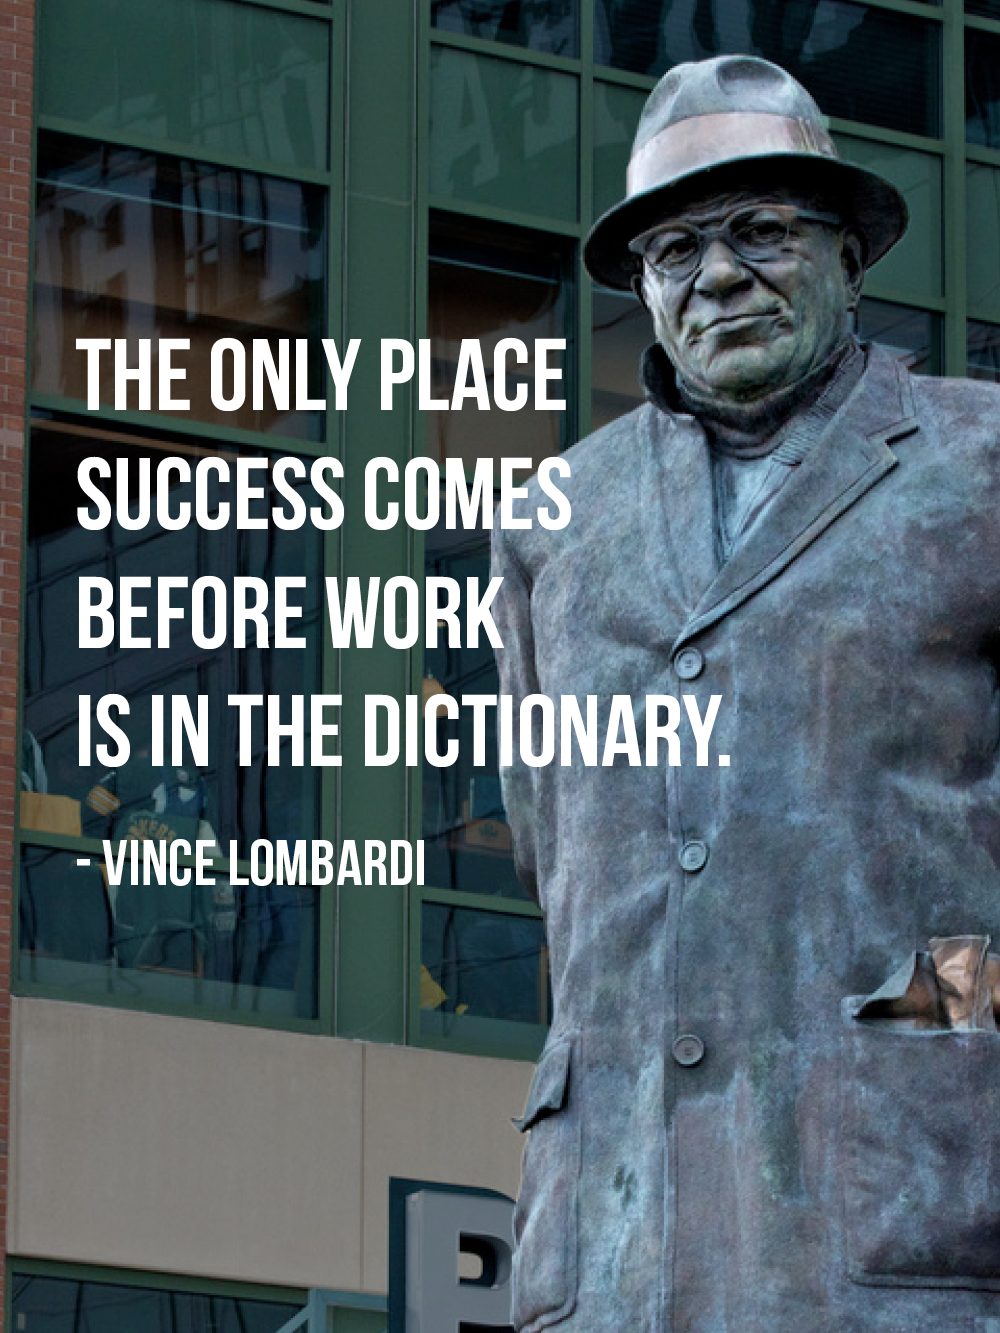 vince lombardi quotes 5